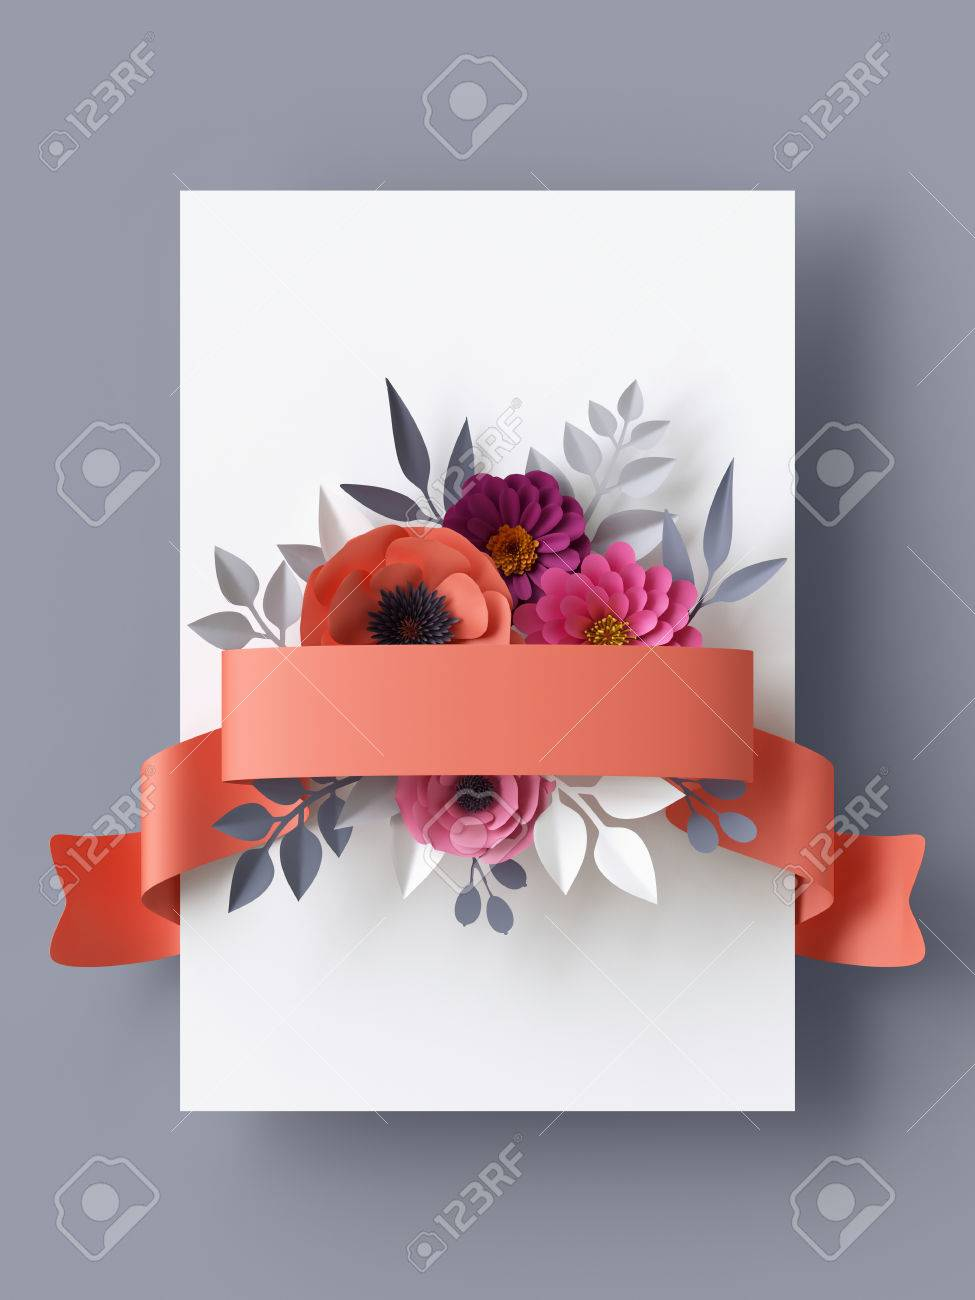 3d render abstract paper flowers vertical floral background 3d render abstract paper flowers vertical floral background blank card template coral mightylinksfo